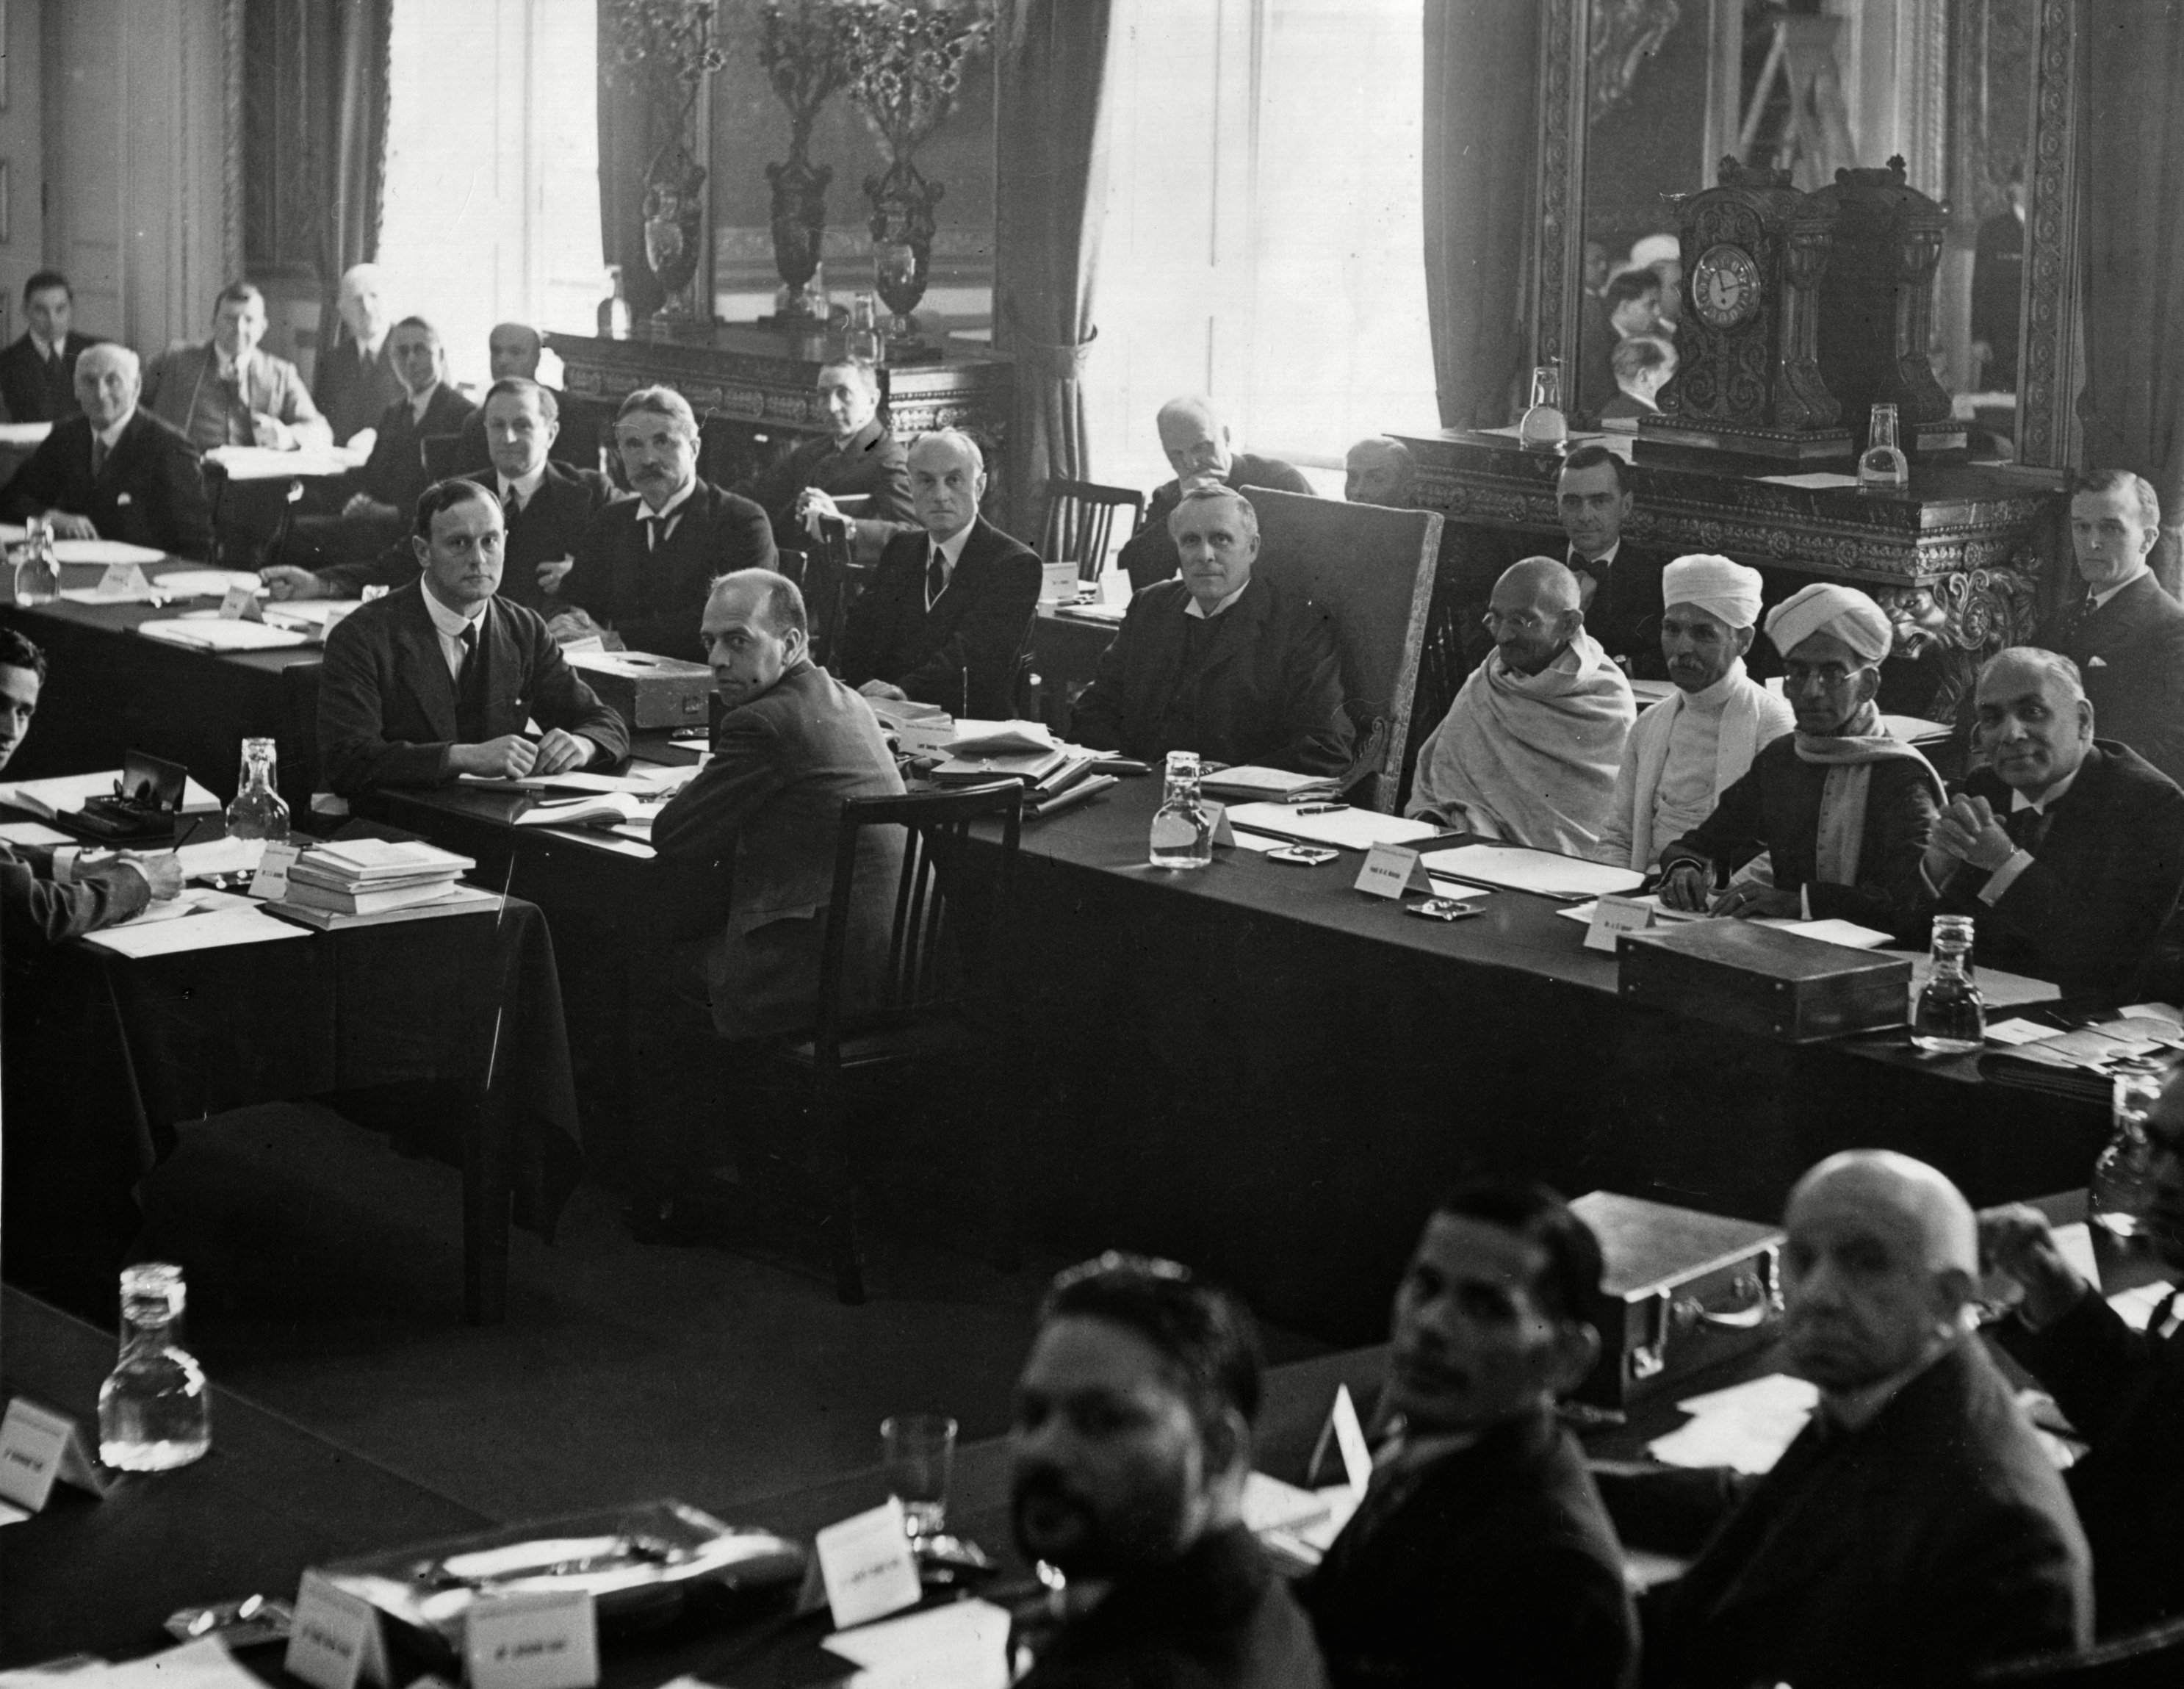 Federal Structure Committee of the India Round-Table Conference at the St. James Palace in London, England, . Lord Sankey is seen in the chair, with, on his left, Gandhi and Paudit Malaviya, will state the Congress case